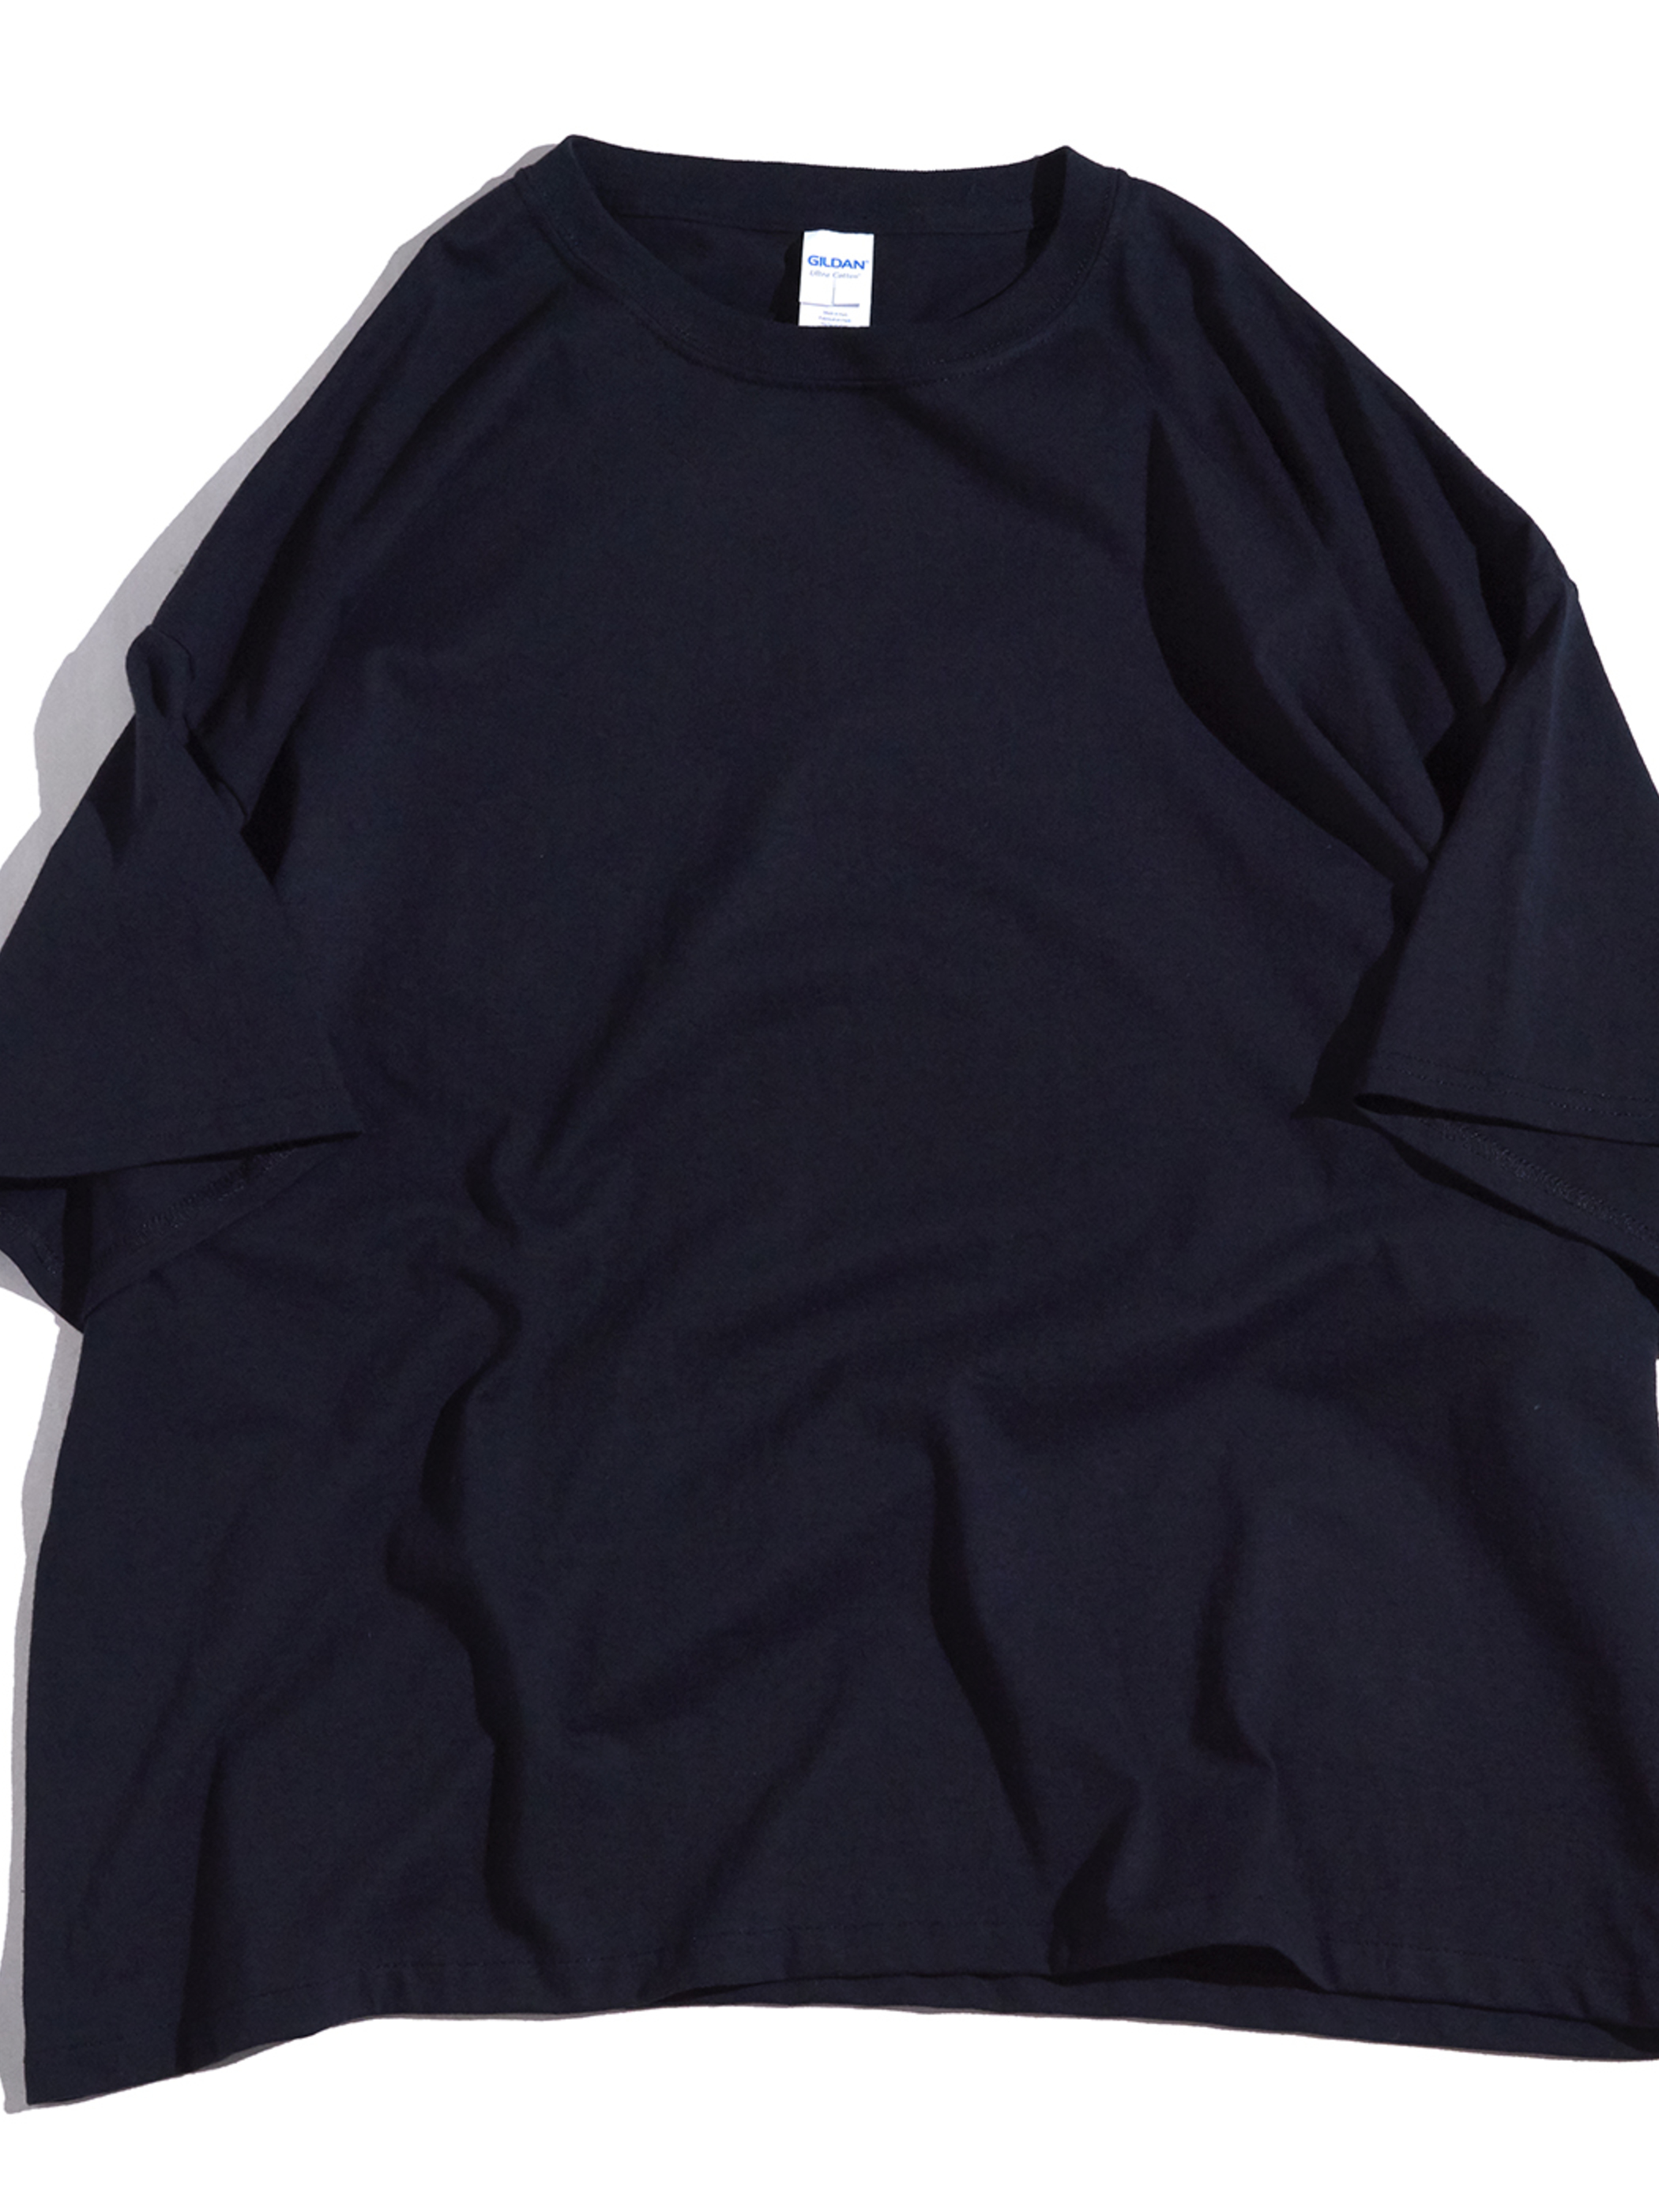 "2000s ""GILDAN"" custom wide blank tee 3XL -BLACK-"